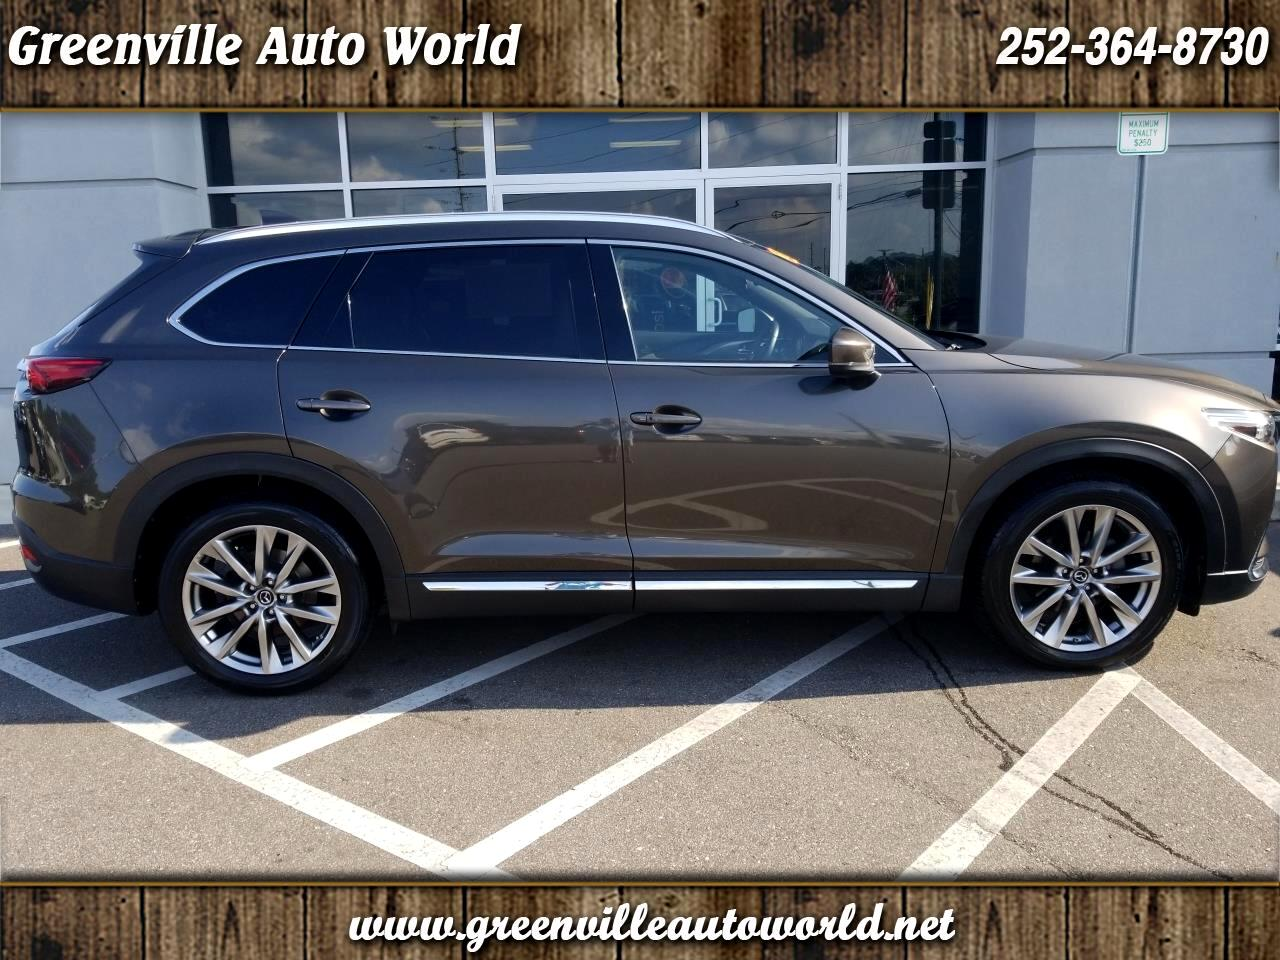 2018 Mazda CX-9 Grand Touring FWD